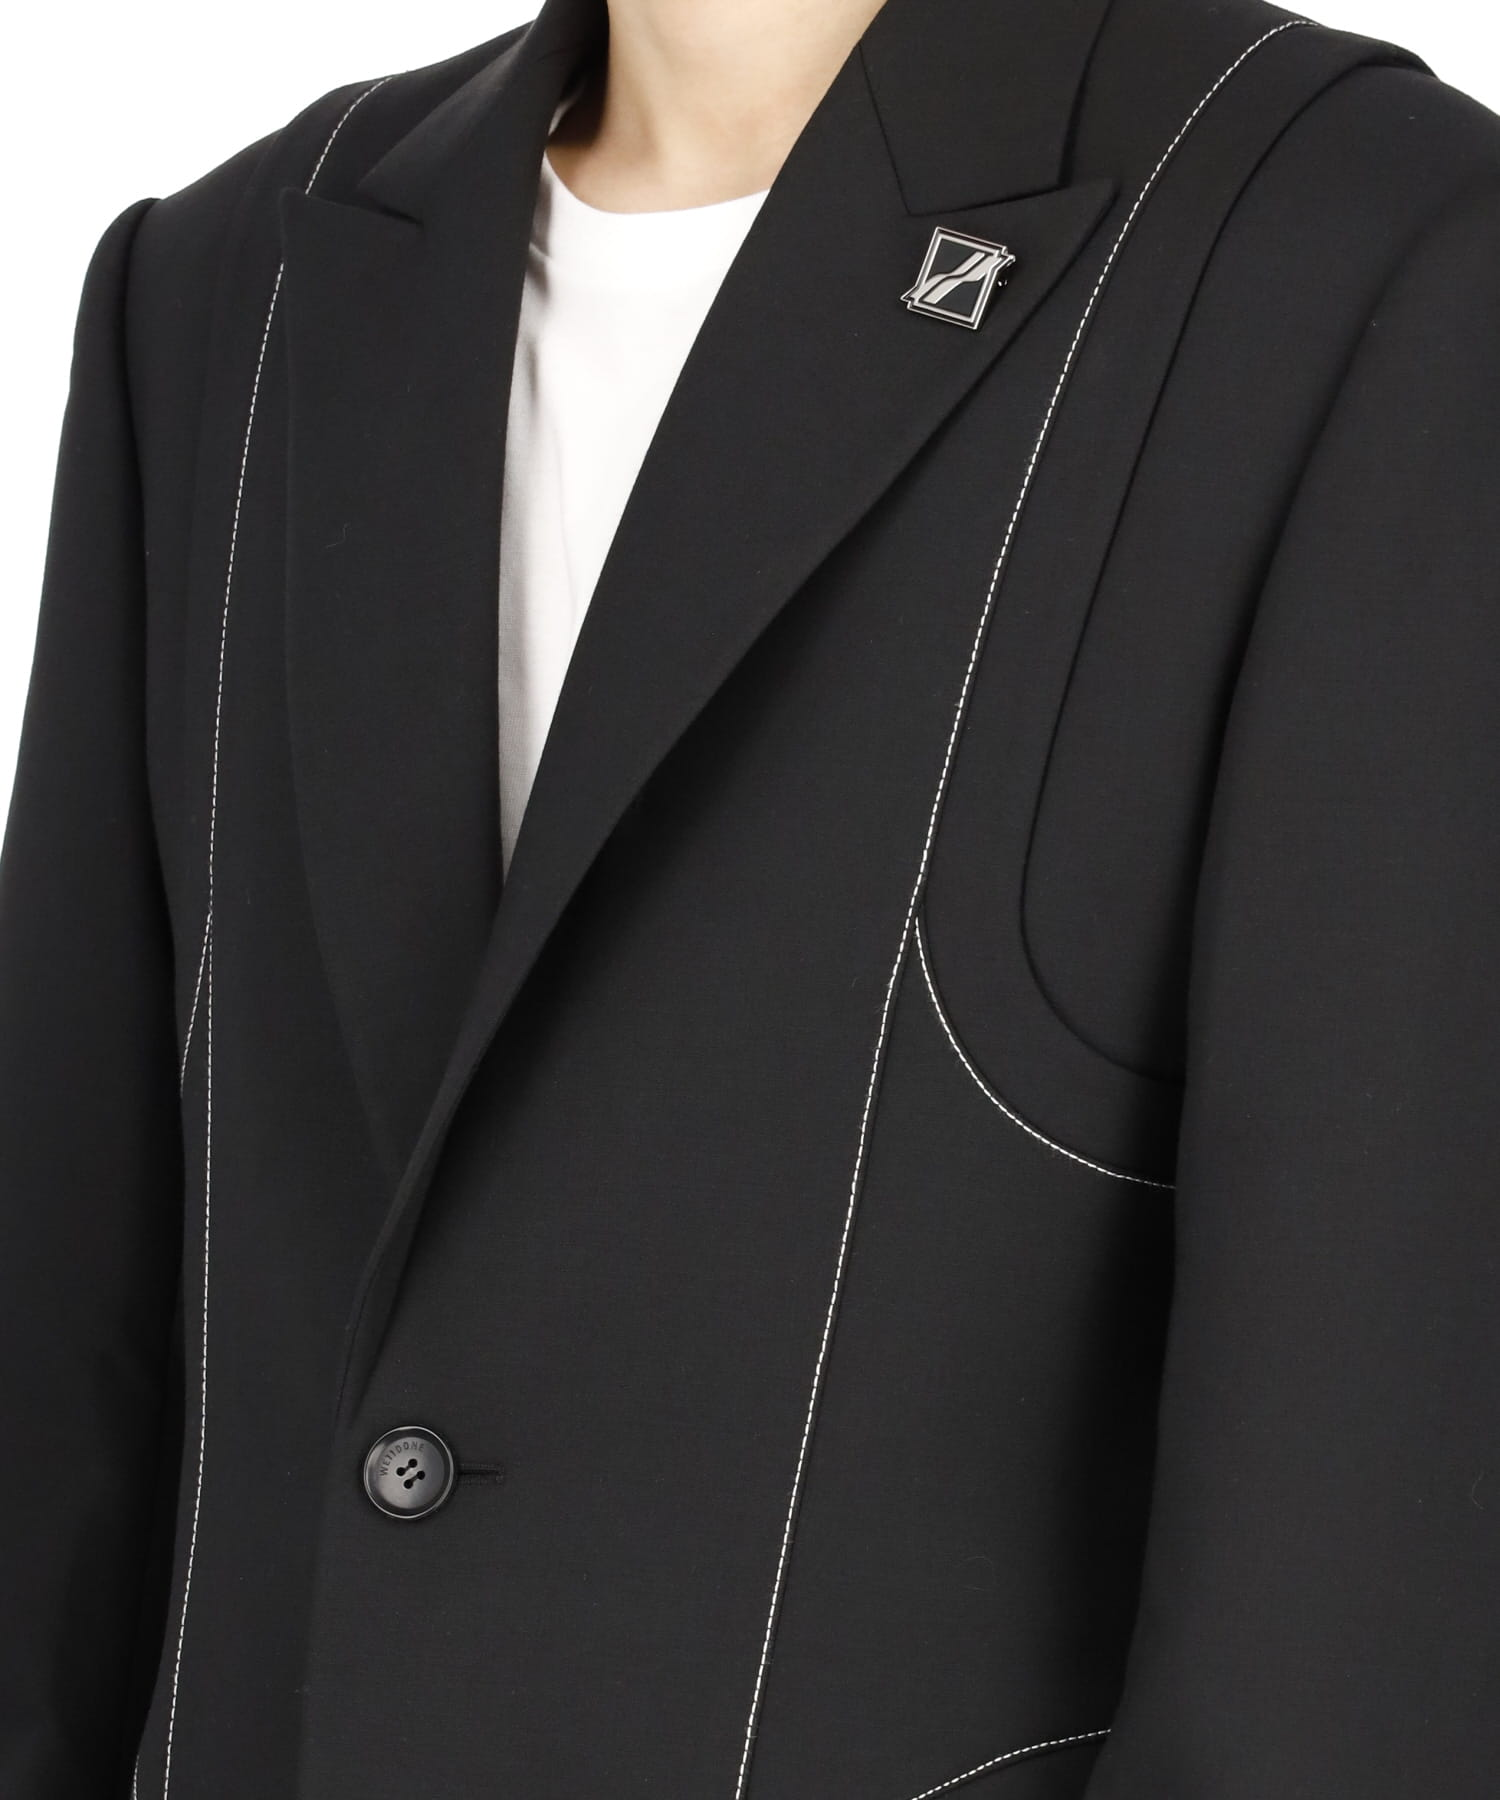 BLACK CONTRAST TOP STITCH TAILORED JACKET